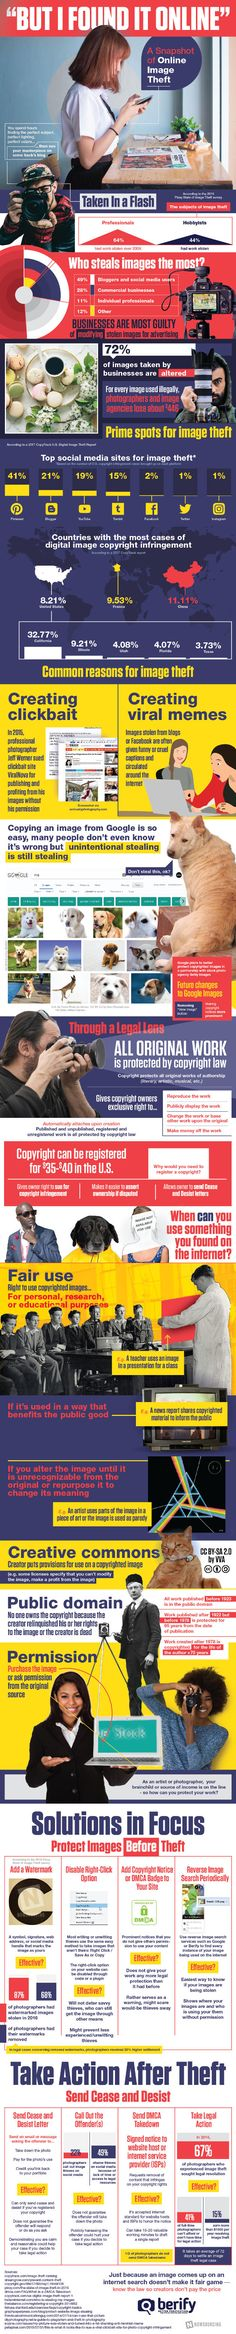 Finding images online can be so easy—but using those images for marketing can also be quite illegal. Check out the infographic to see how to source your images ethically.